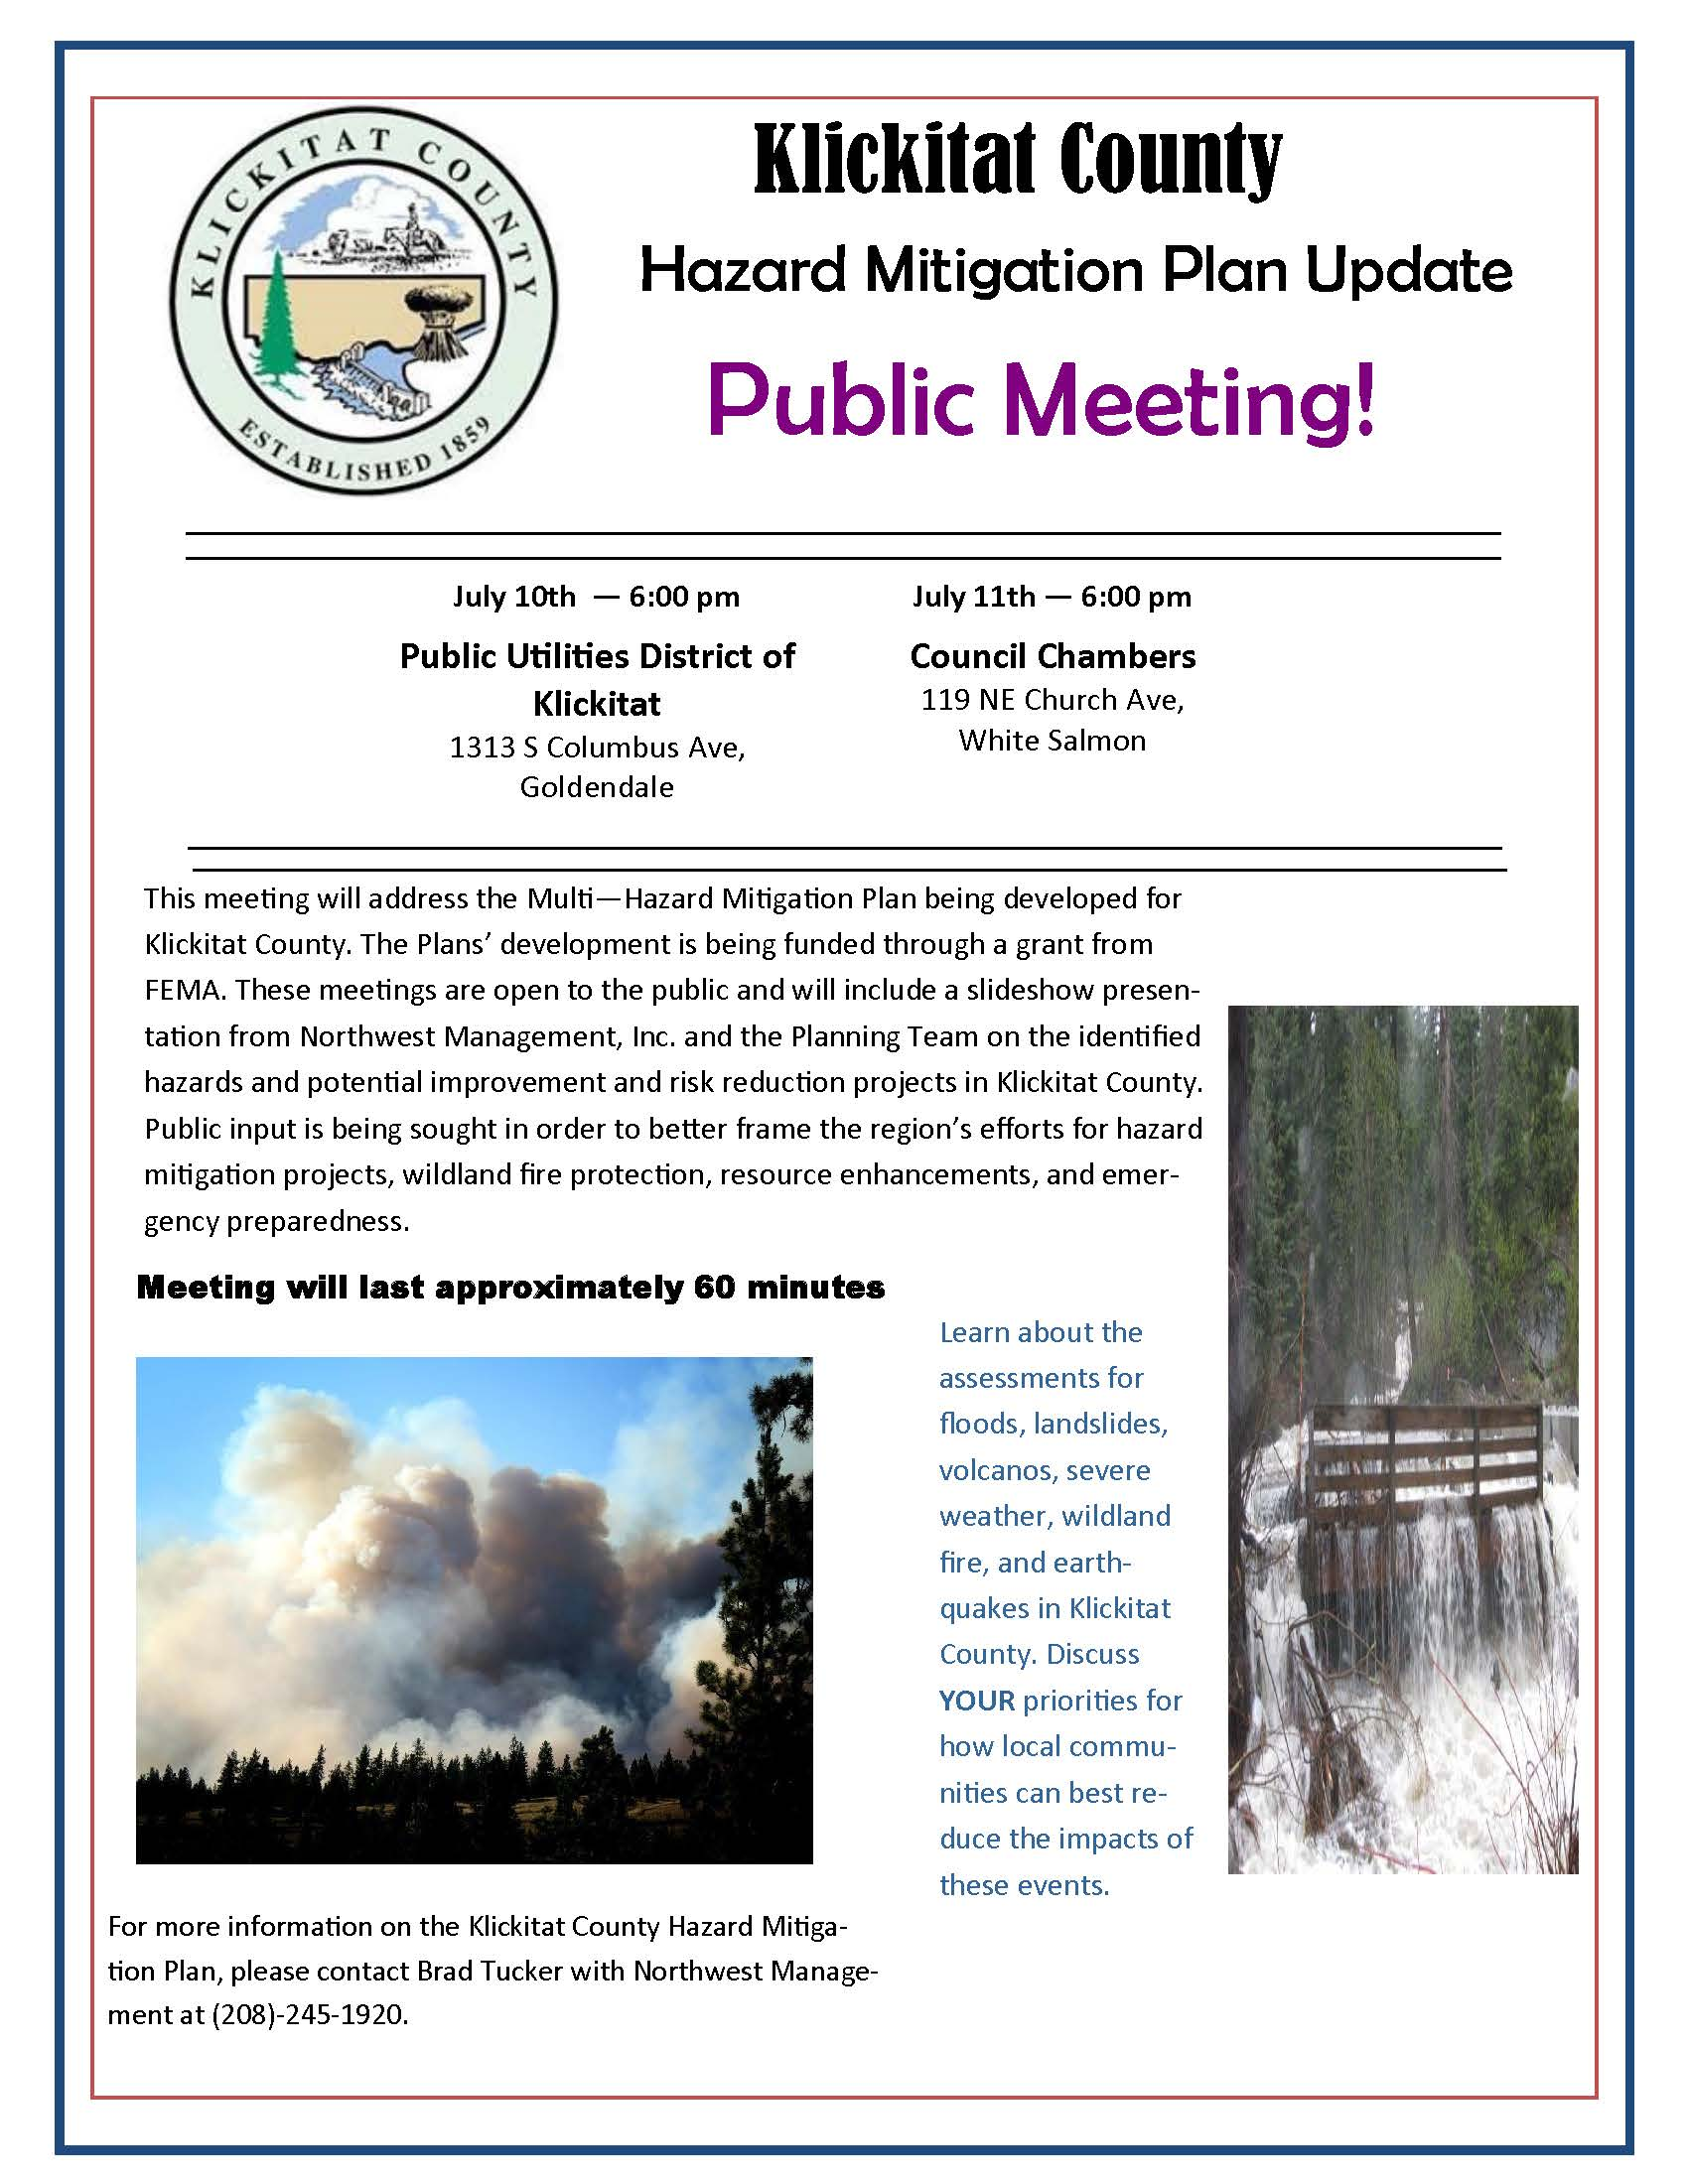 Public Meeting Announcement (3)